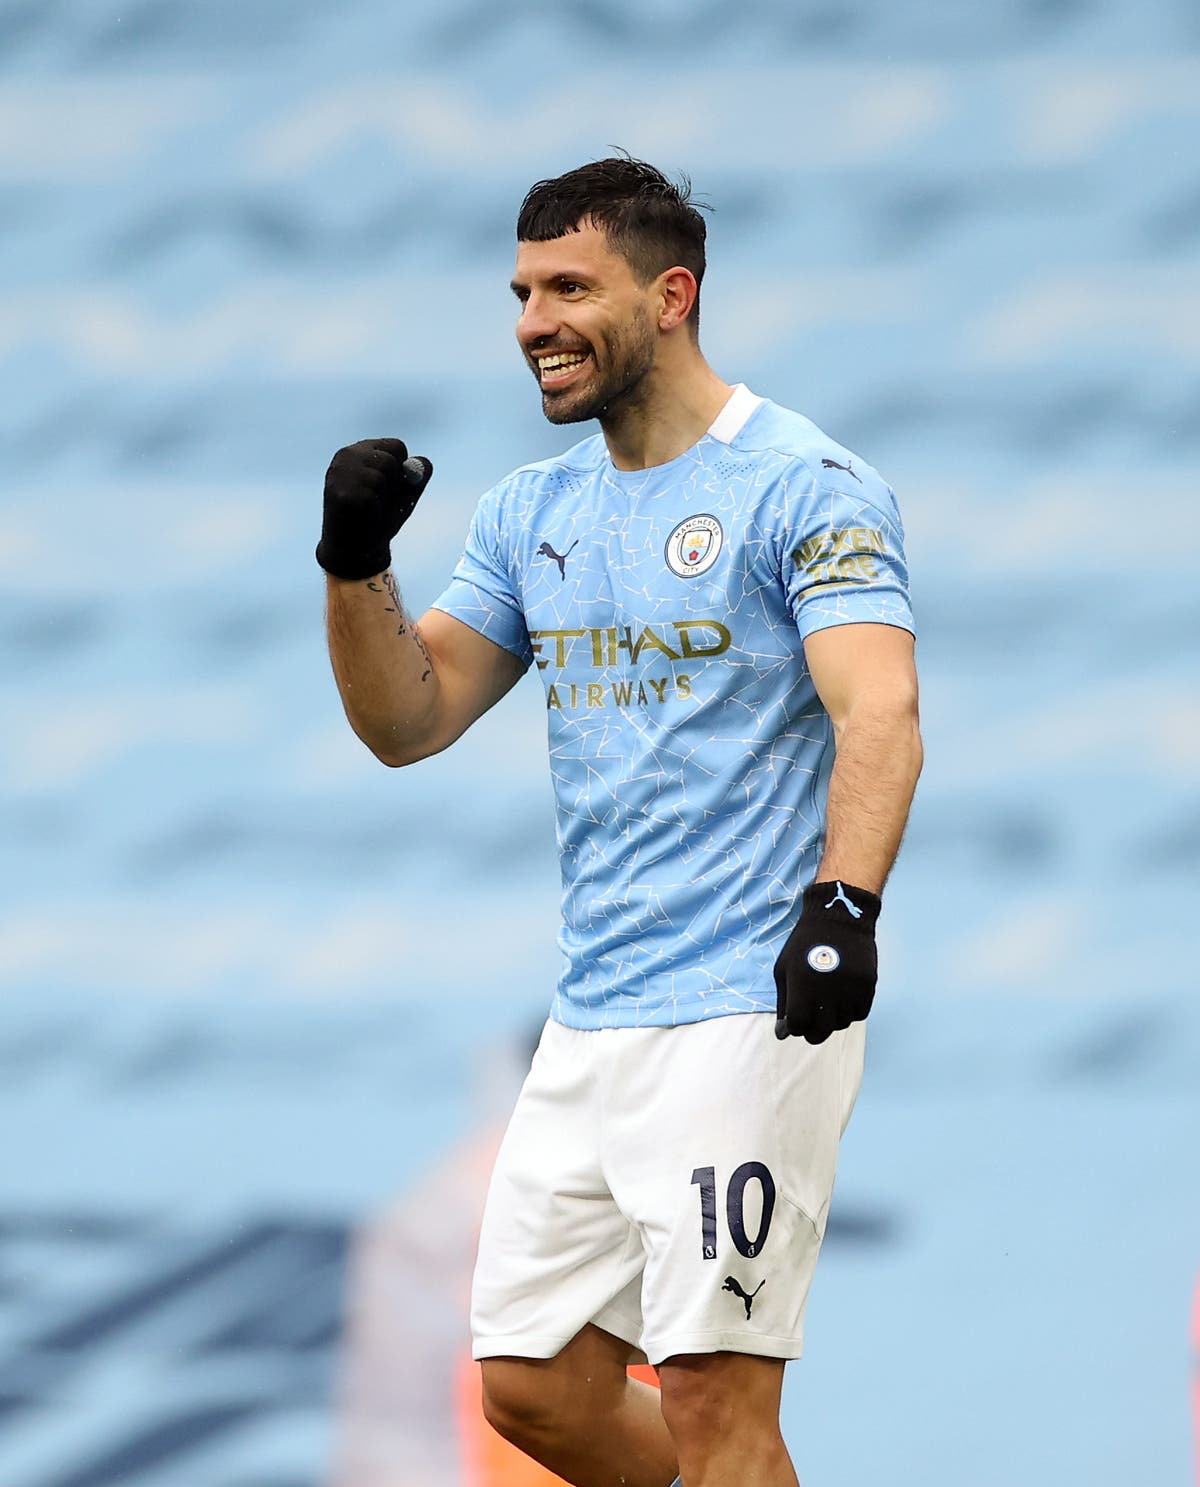 Sergio Aguero on his way to Barcelona: A look at Argentinian's career in numbers